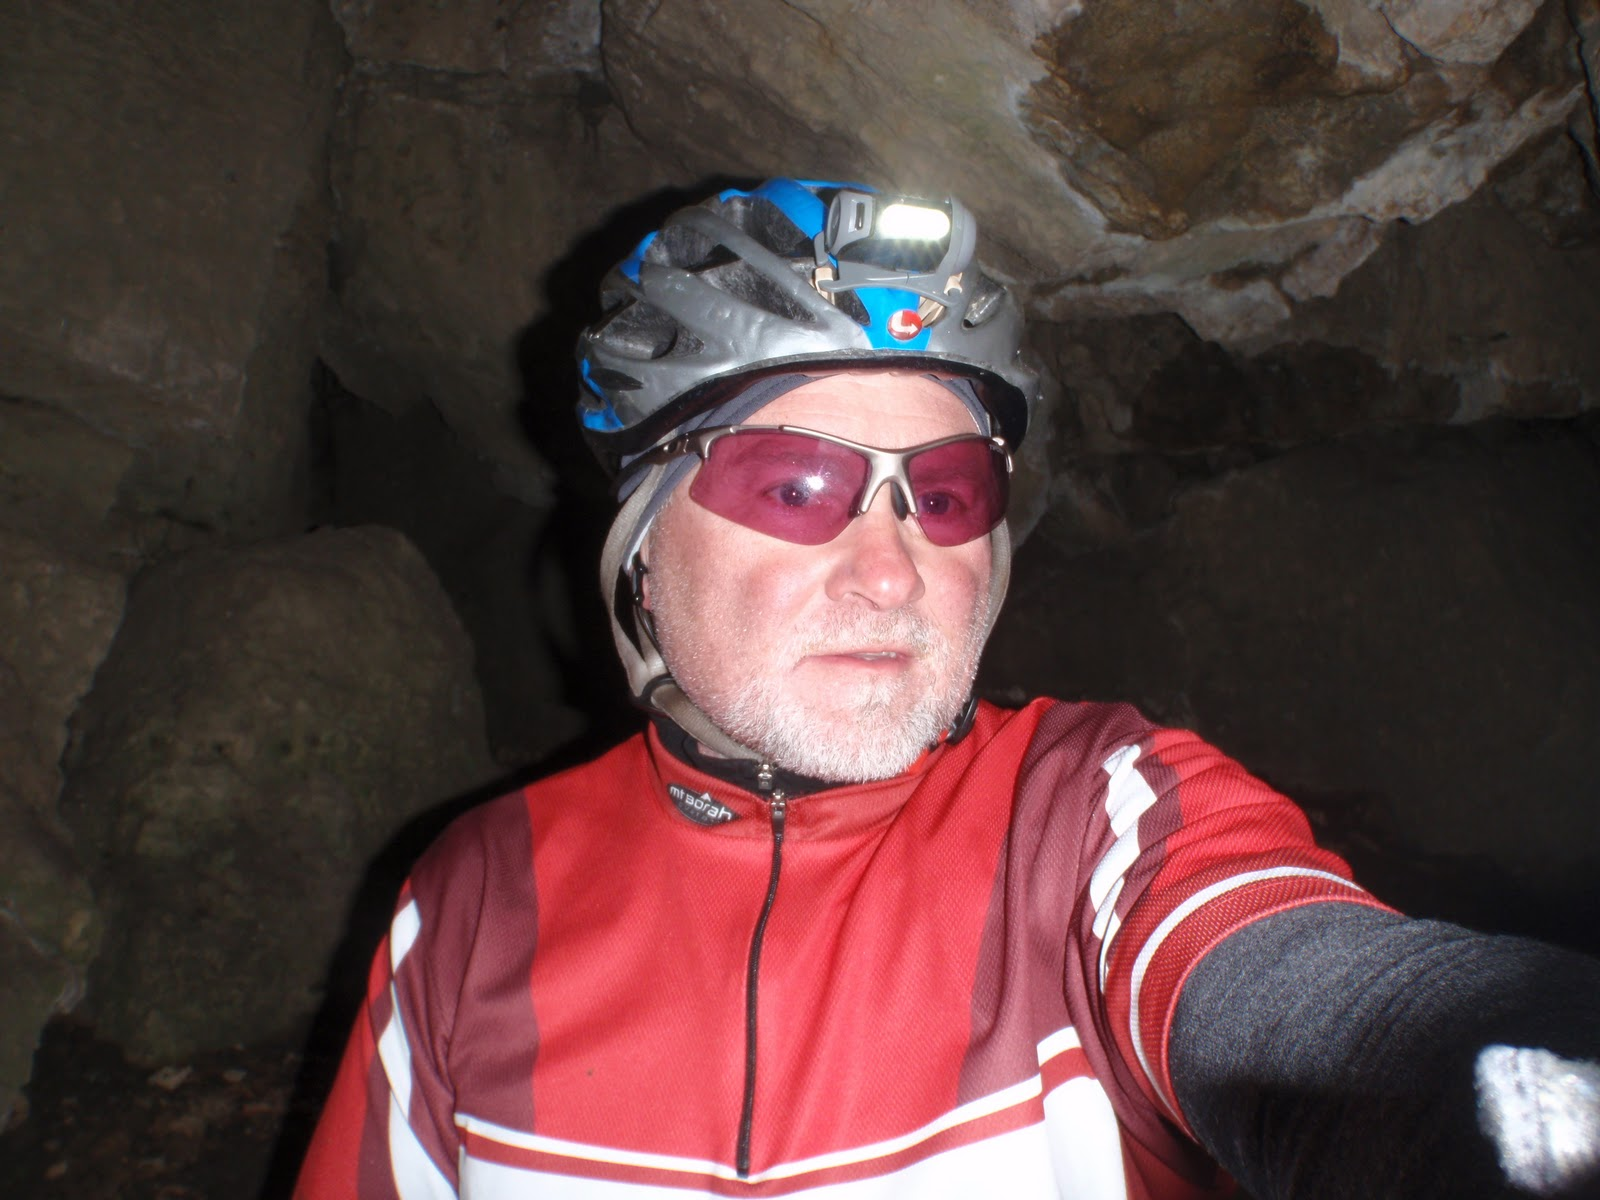 Man Cave John Gray : Bicycling is proof that god loves us and wants to have